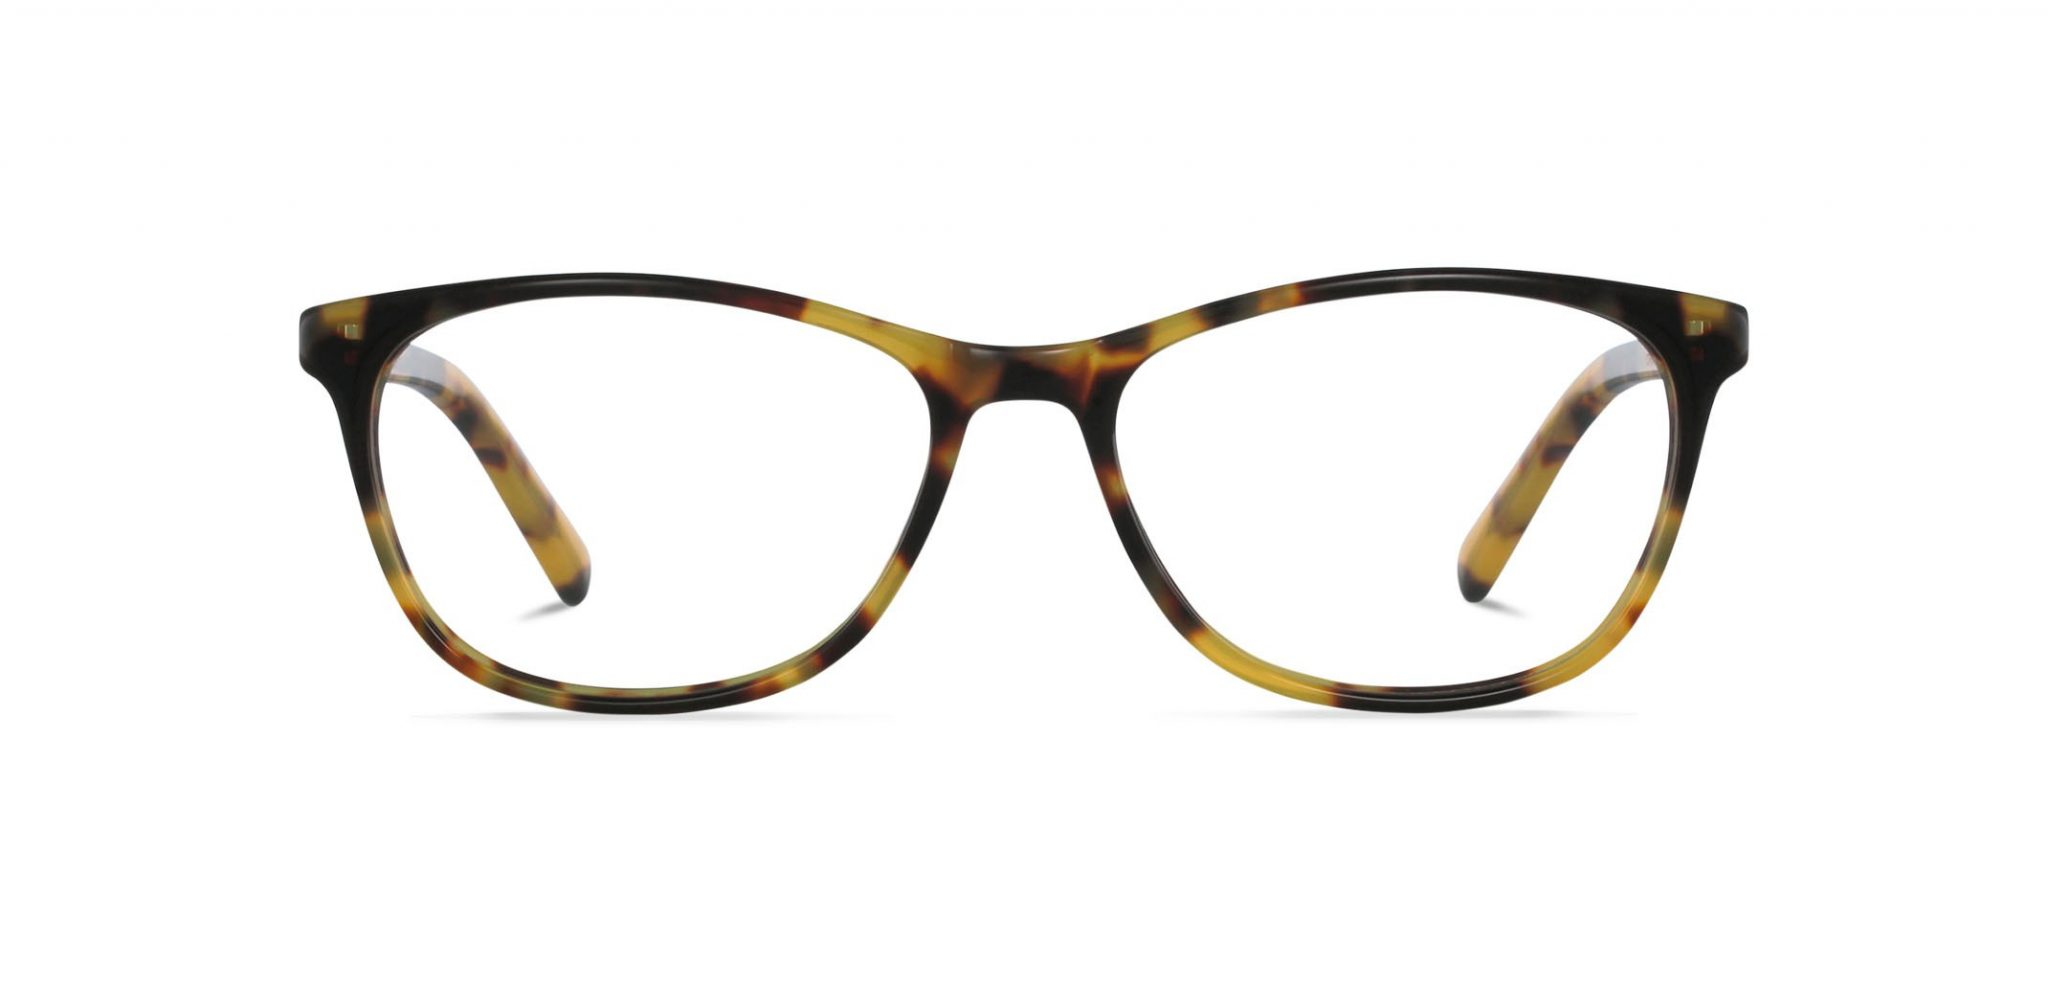 DiKA eyewear – Donatello